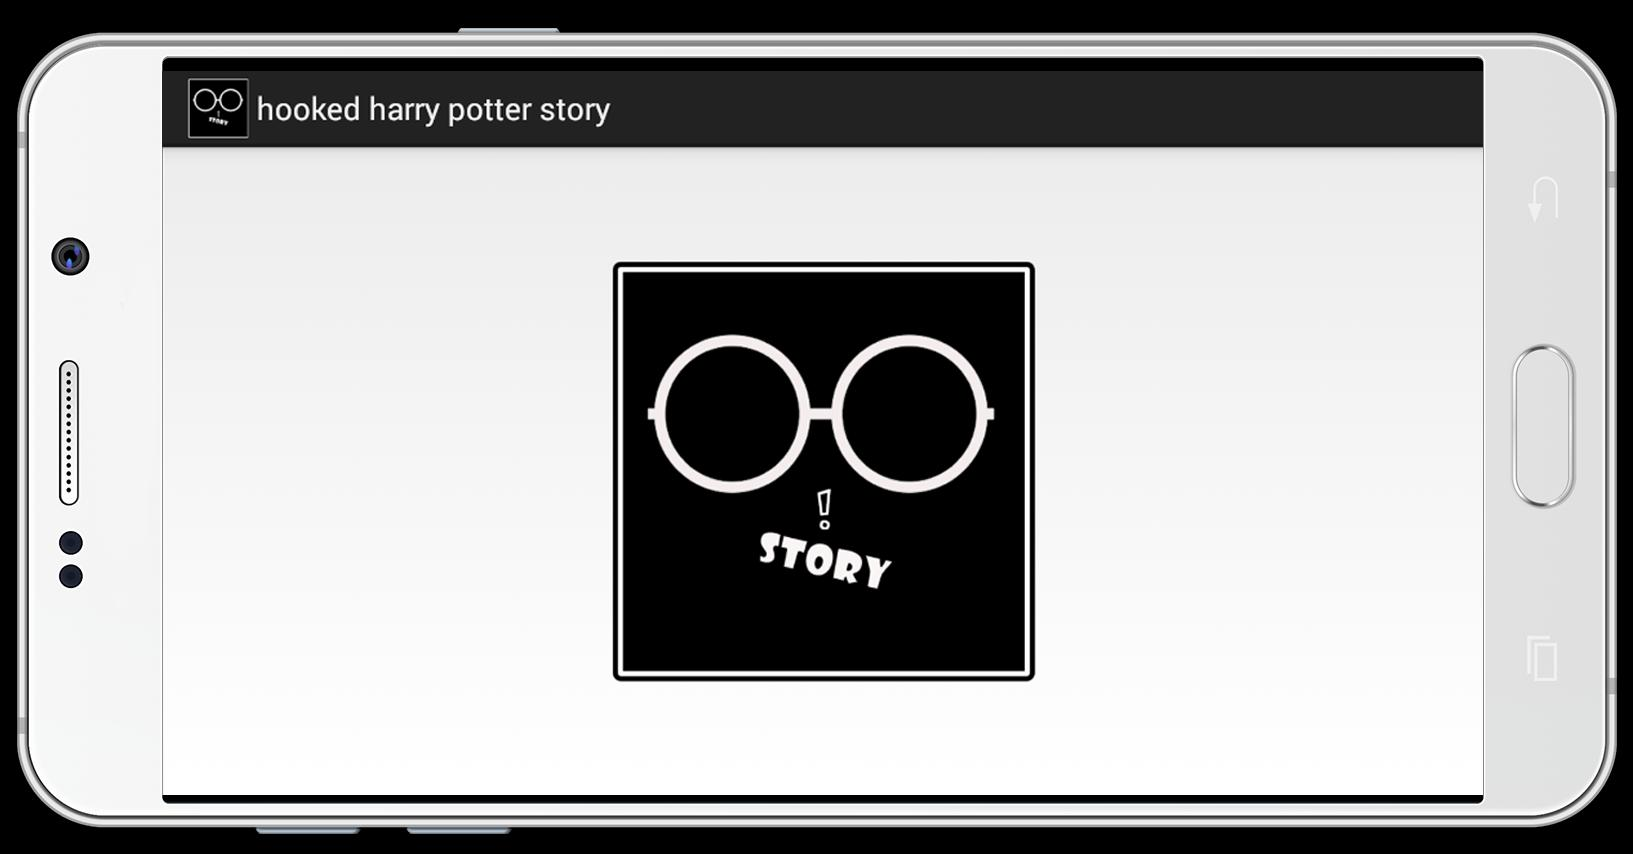 Hooked - Harry Potter stories for Android - APK Download